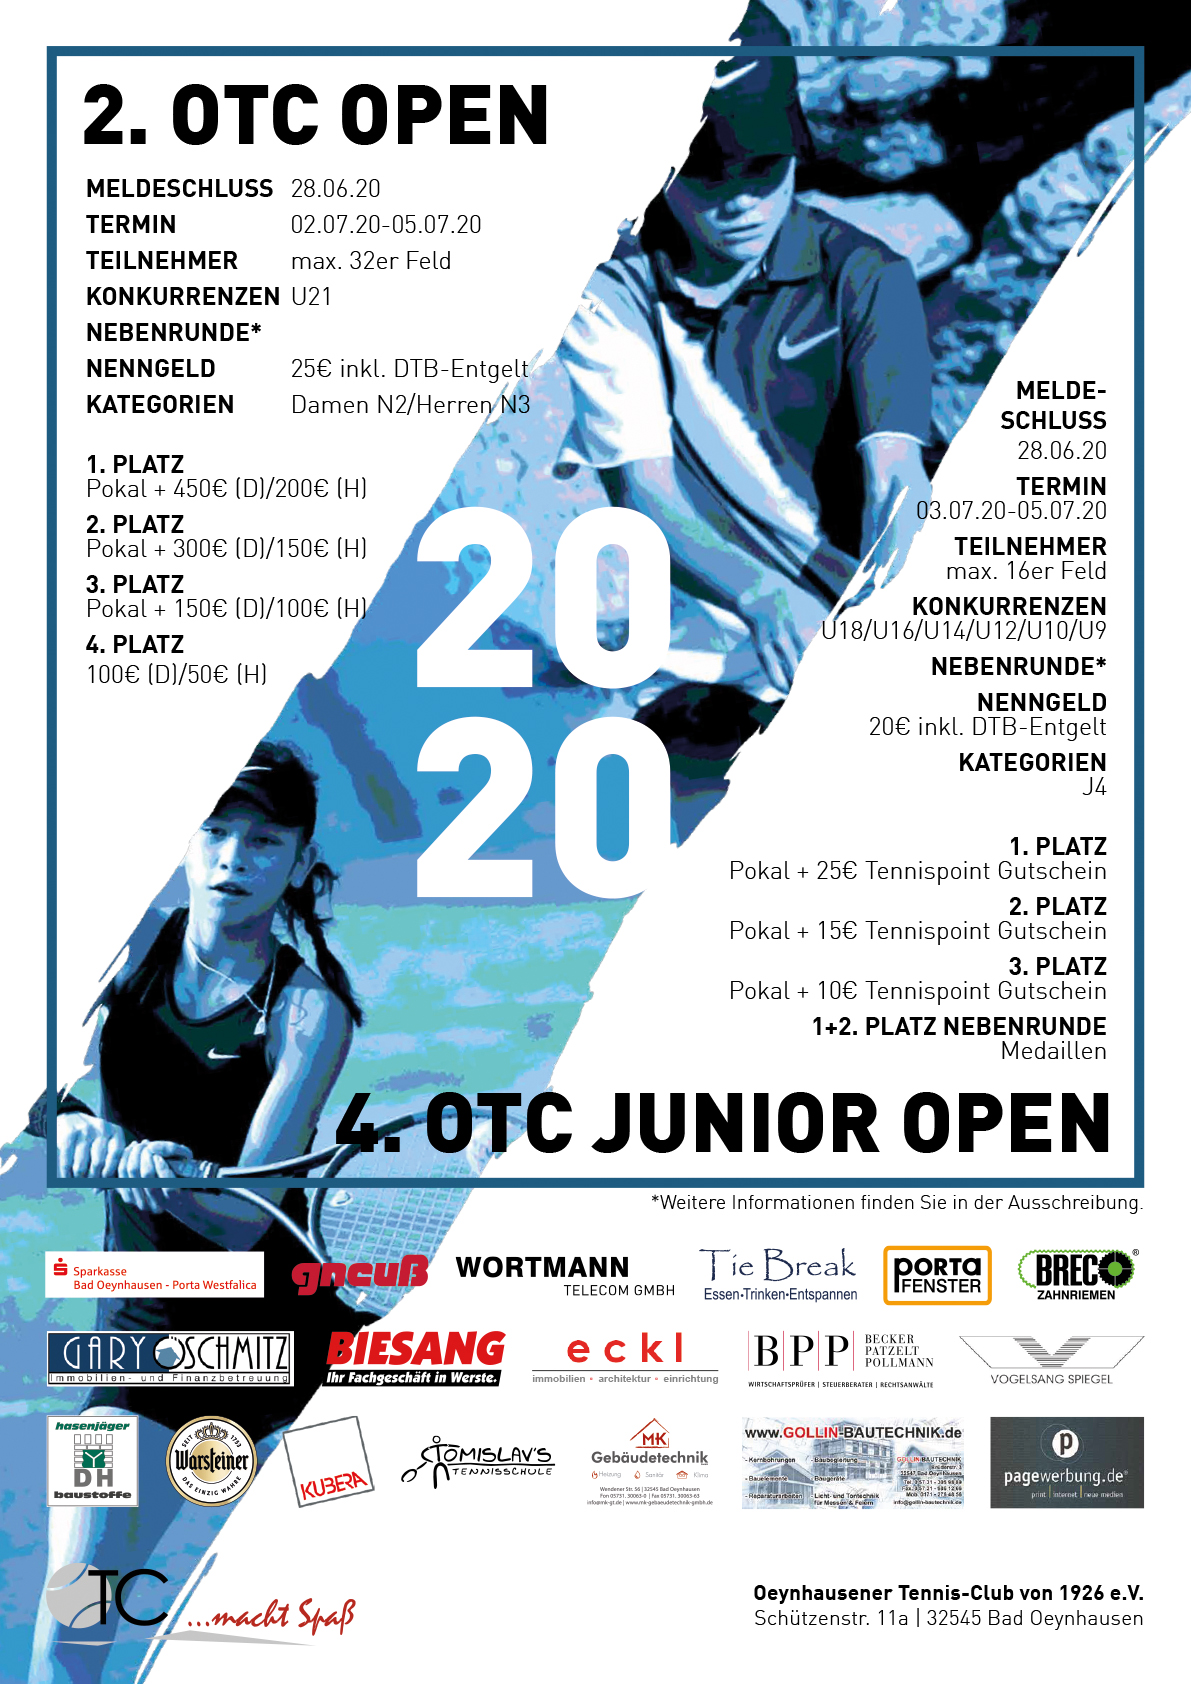 OTC Junior Open Tennistunier